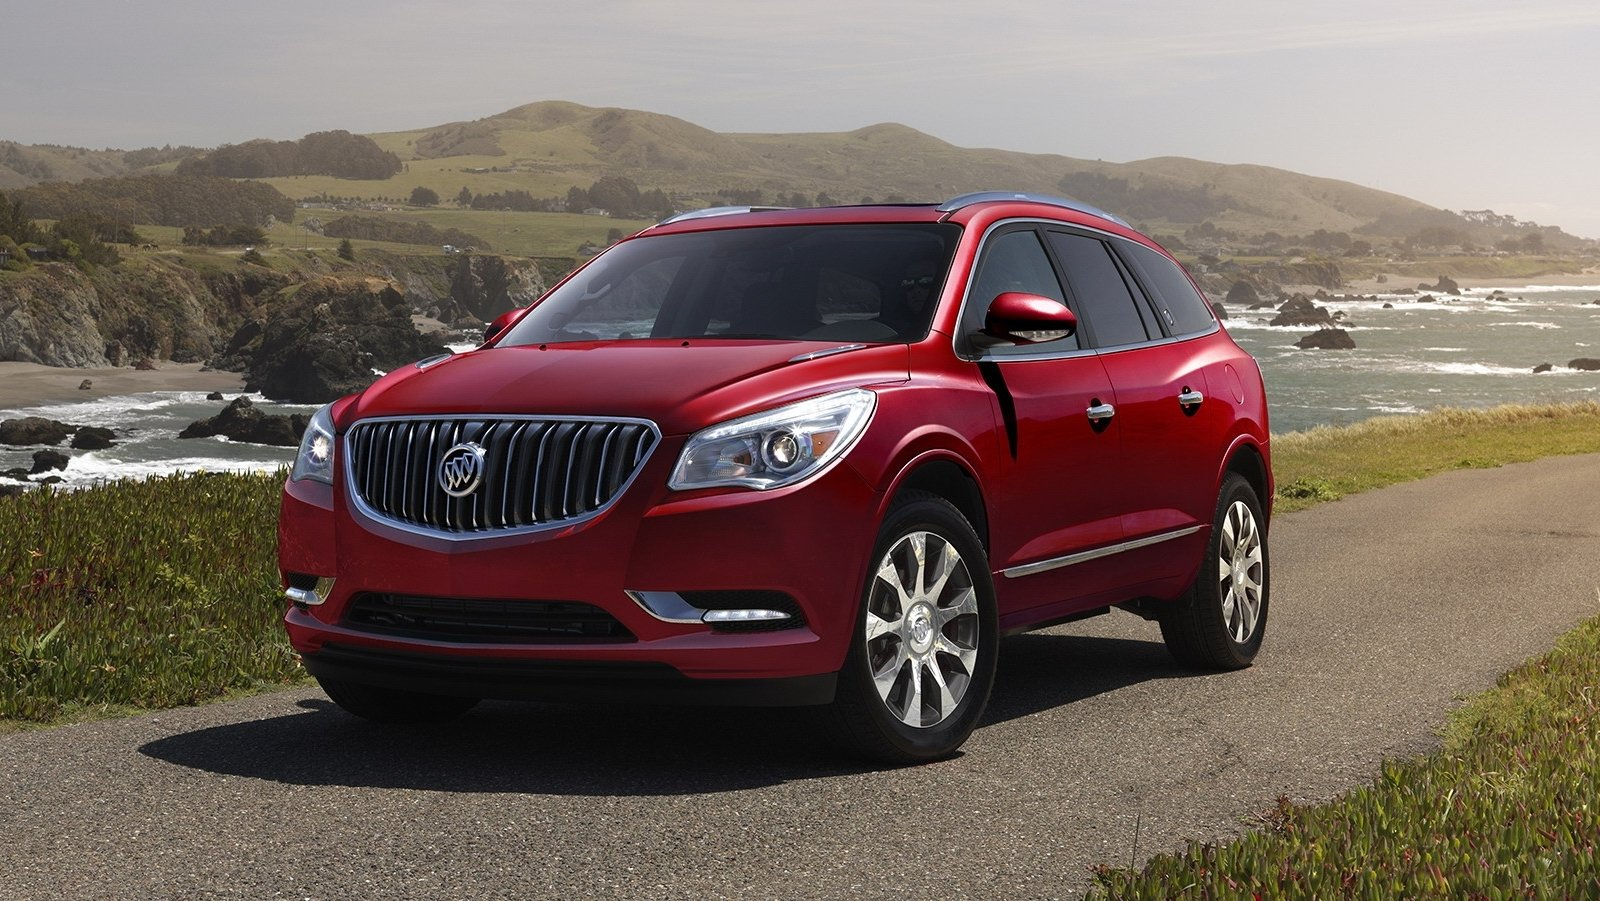 2016 buick enclave sport touring edition review gallery top speed. Black Bedroom Furniture Sets. Home Design Ideas